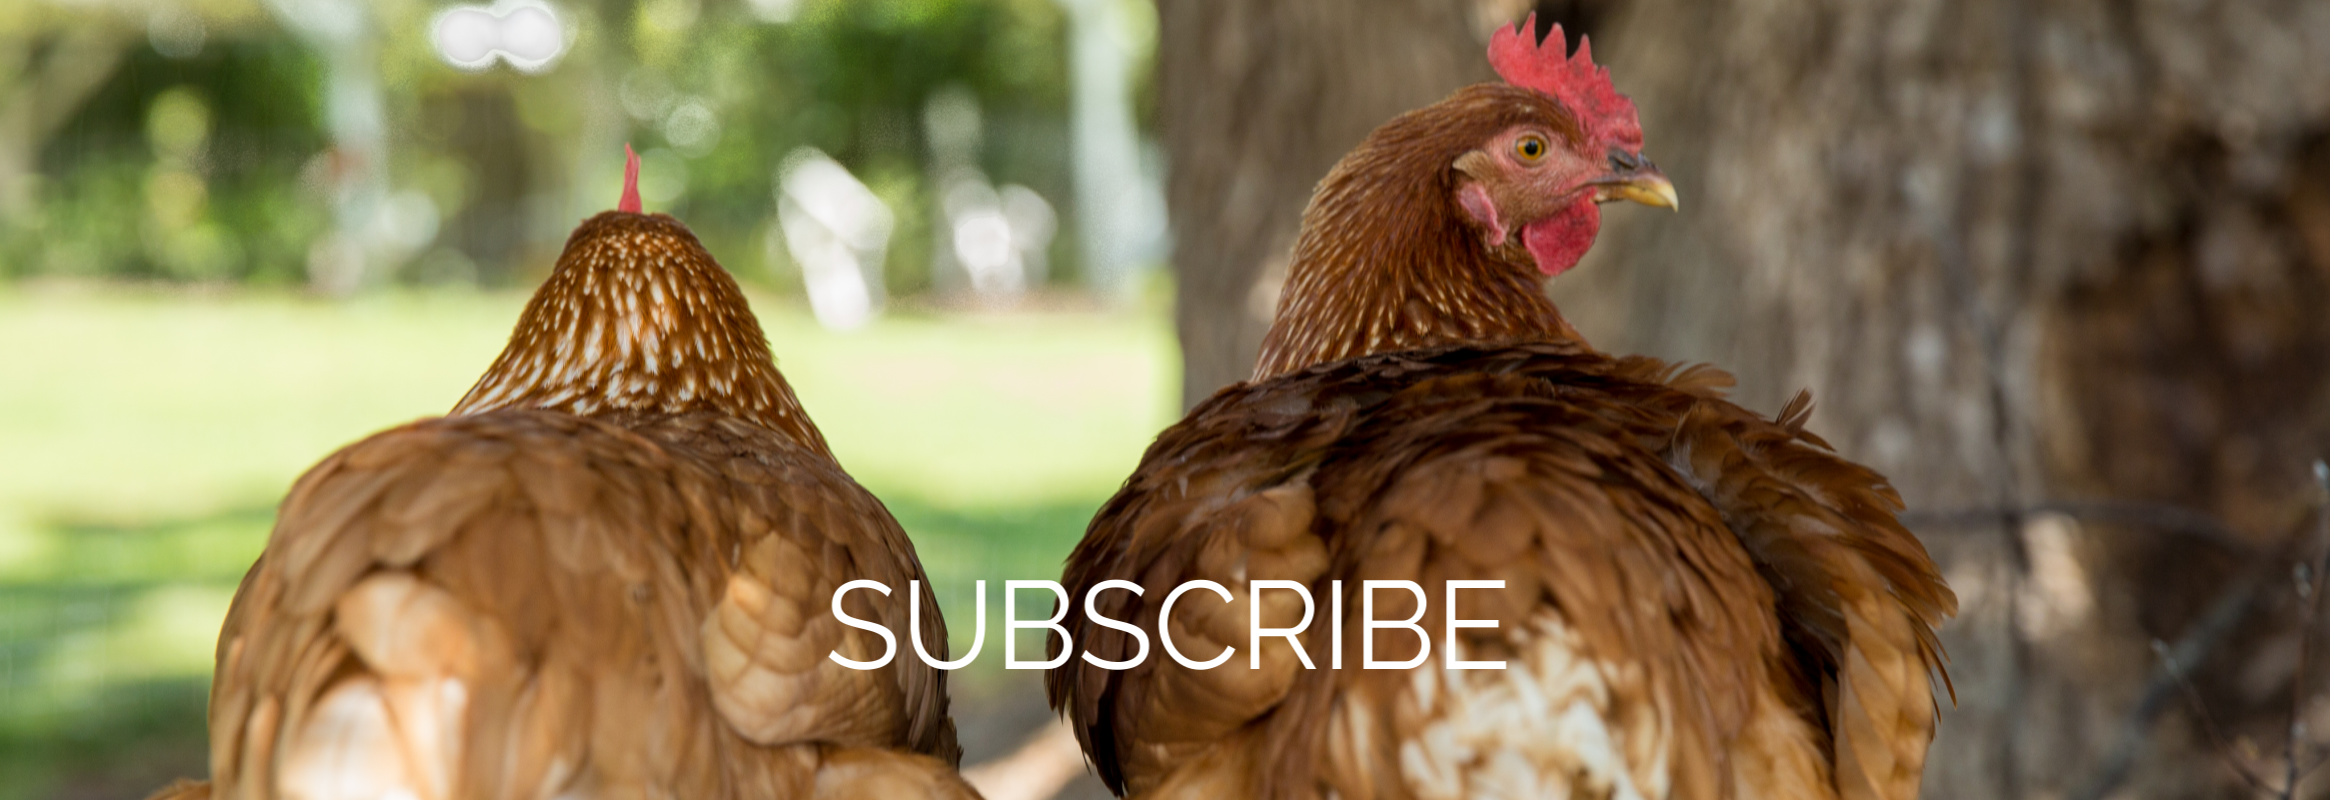 Hens SUBSCRIBE (1)